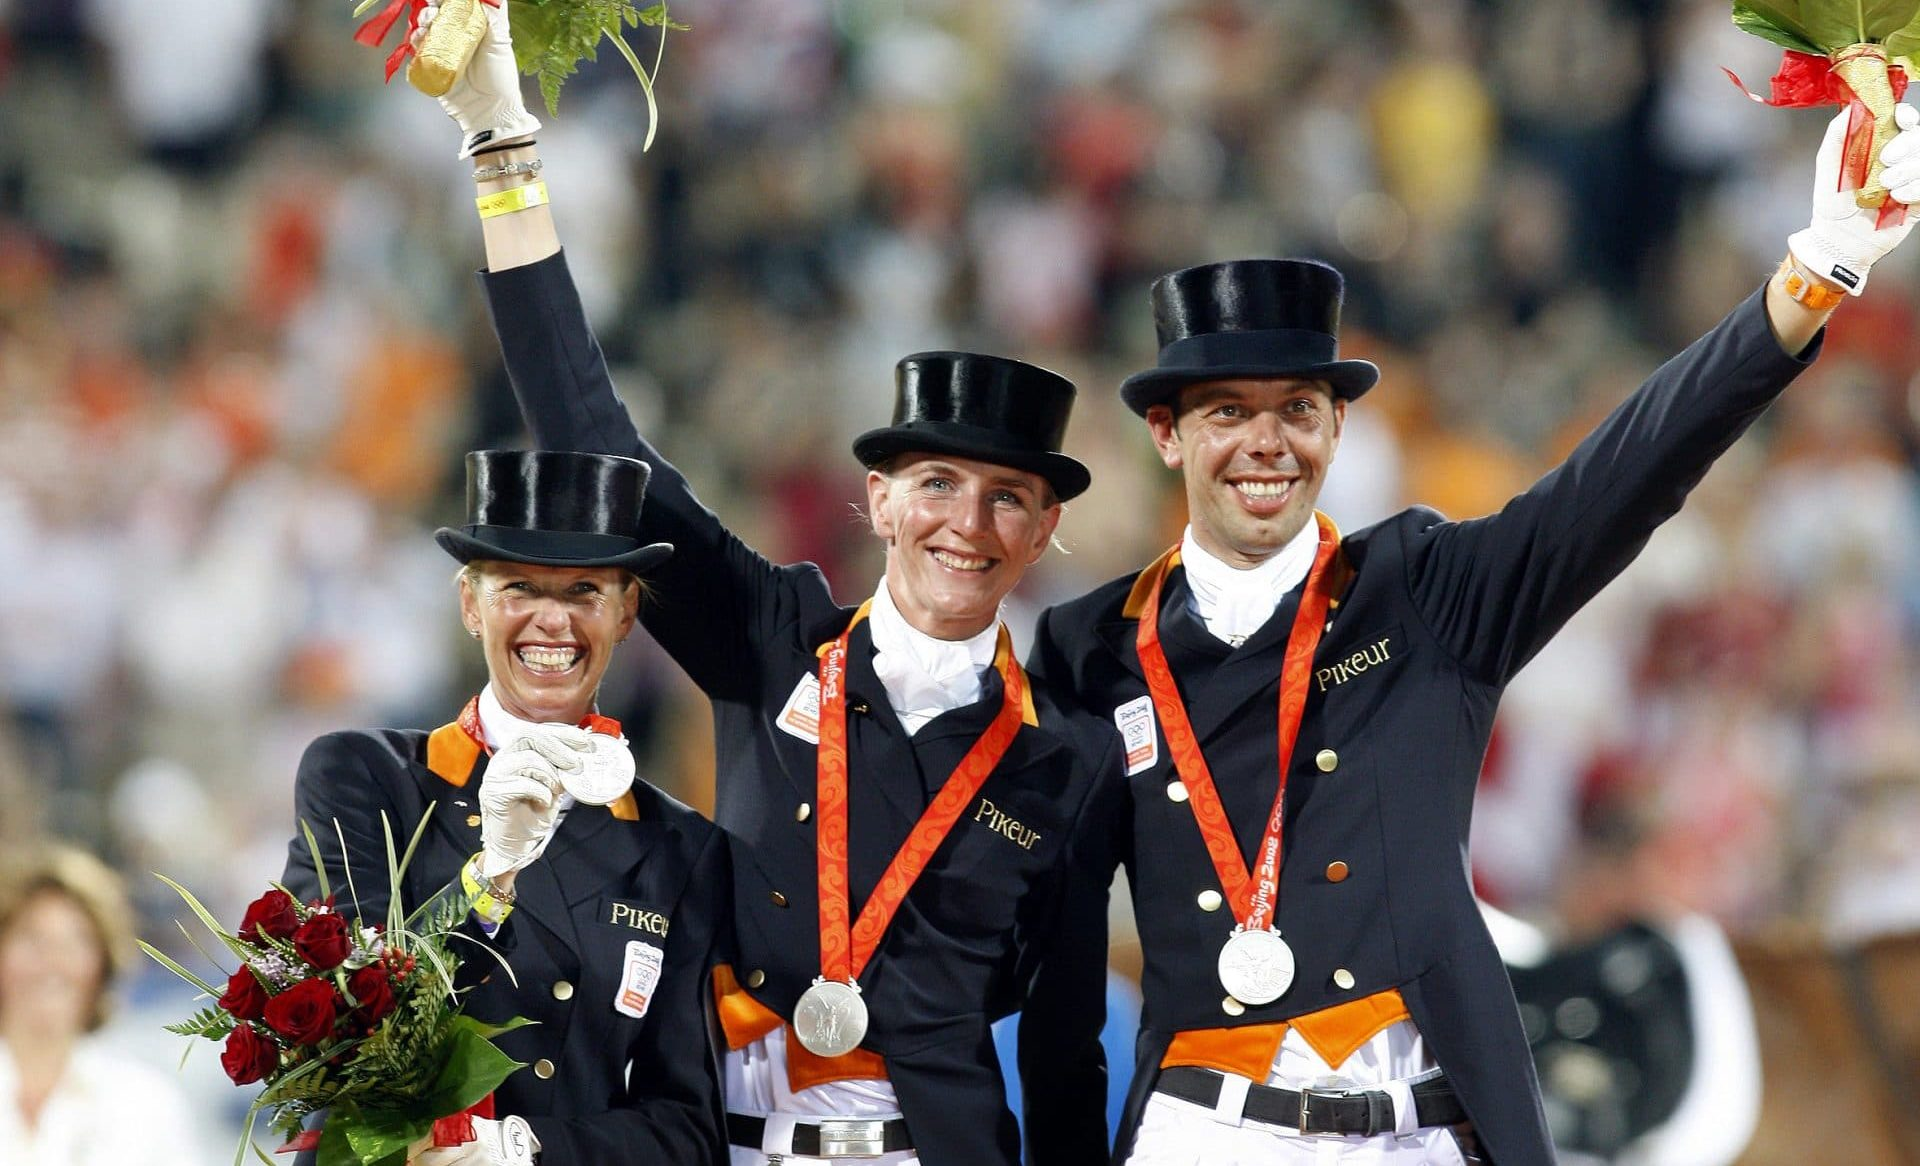 Podium Nederlands team met Imke